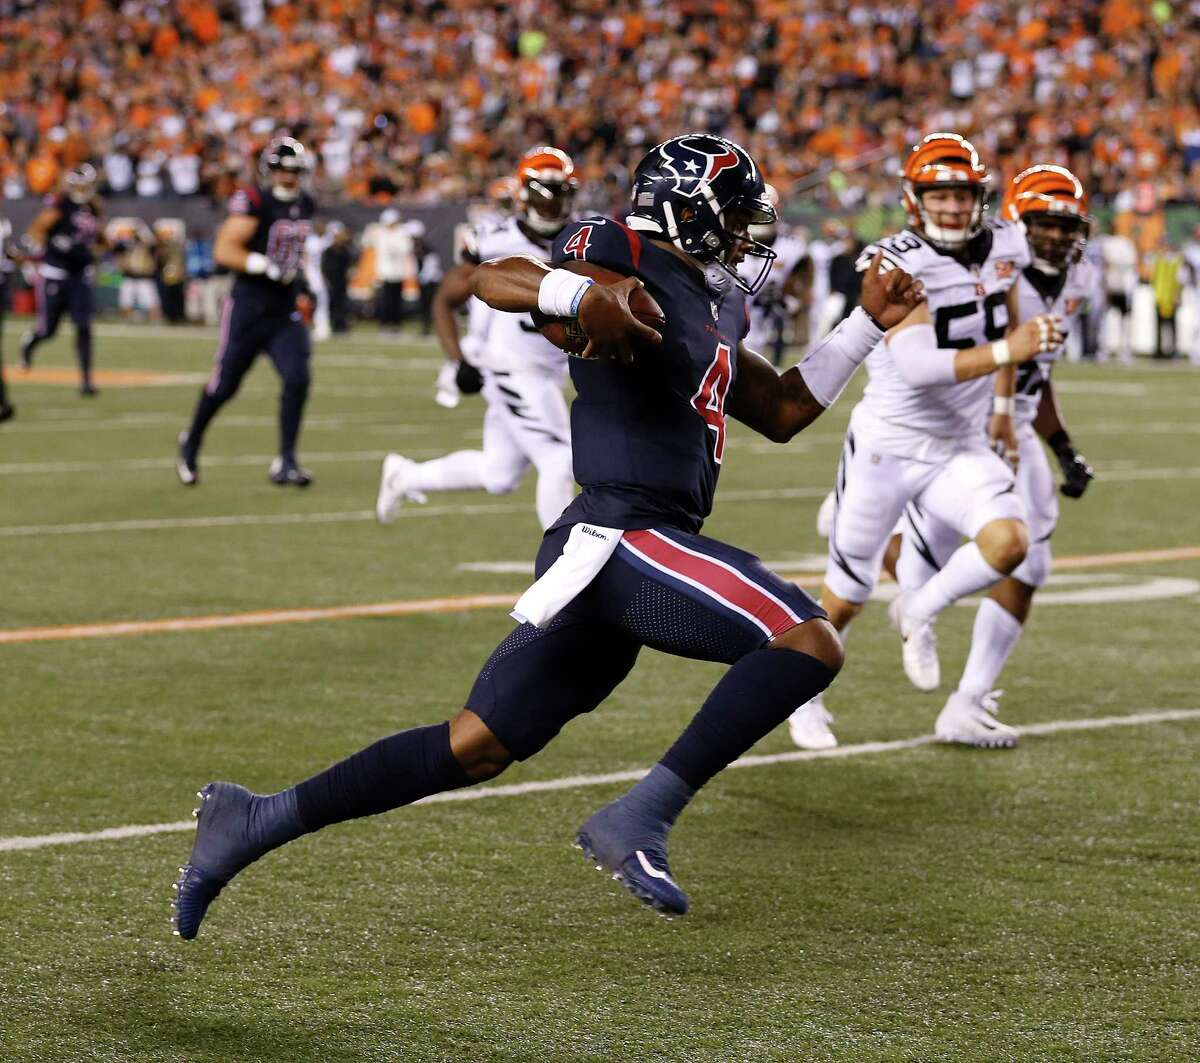 Far and away the highlight of Deshaun Watson's first career start for the Texans was a 49-yard, second-quarter scramble for the only touchdown in a win against the Bengals.